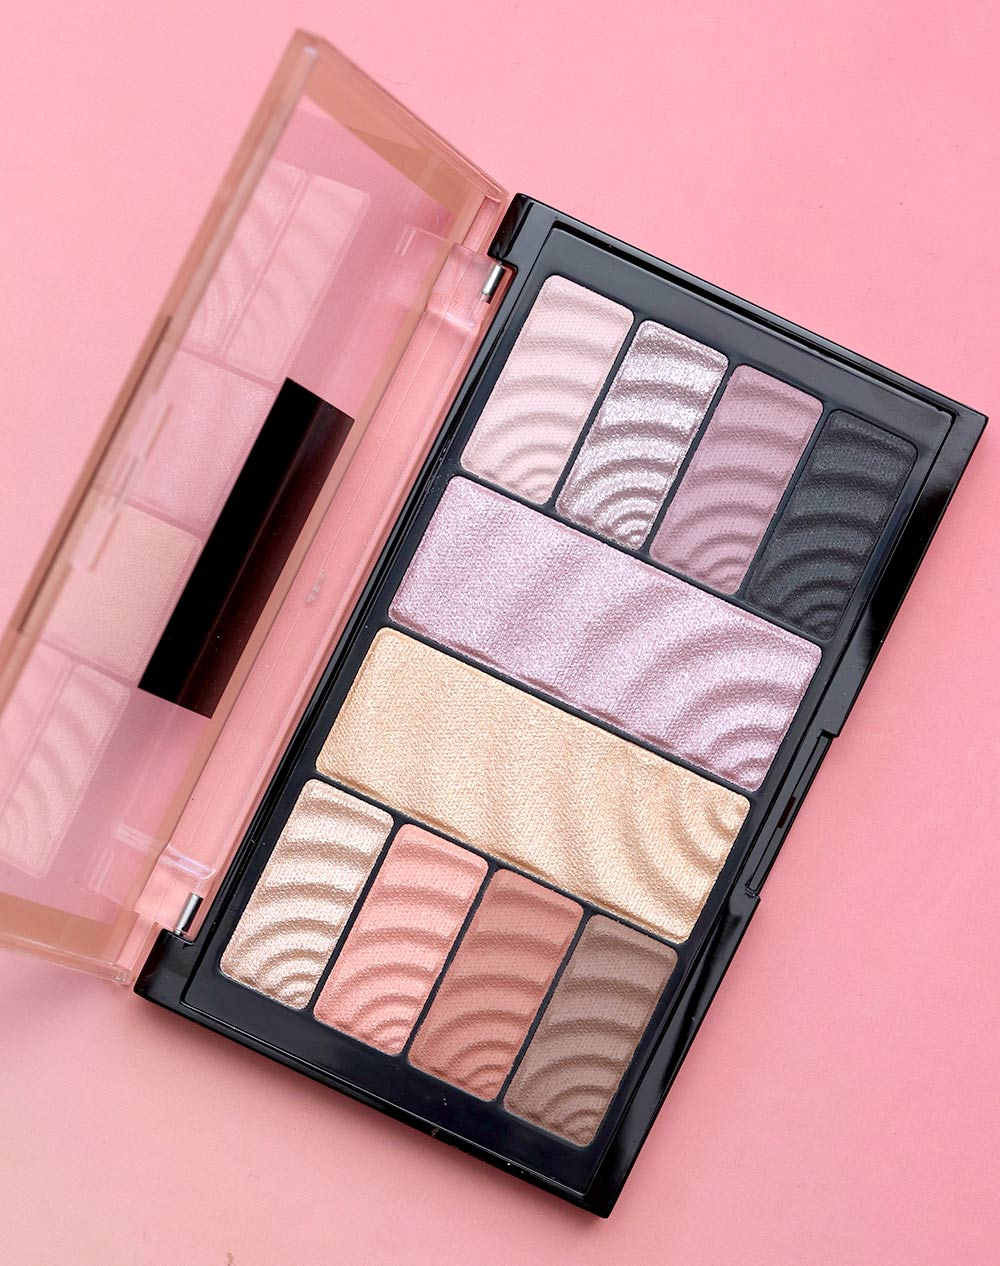 maybelline total temptation eye cheek palette